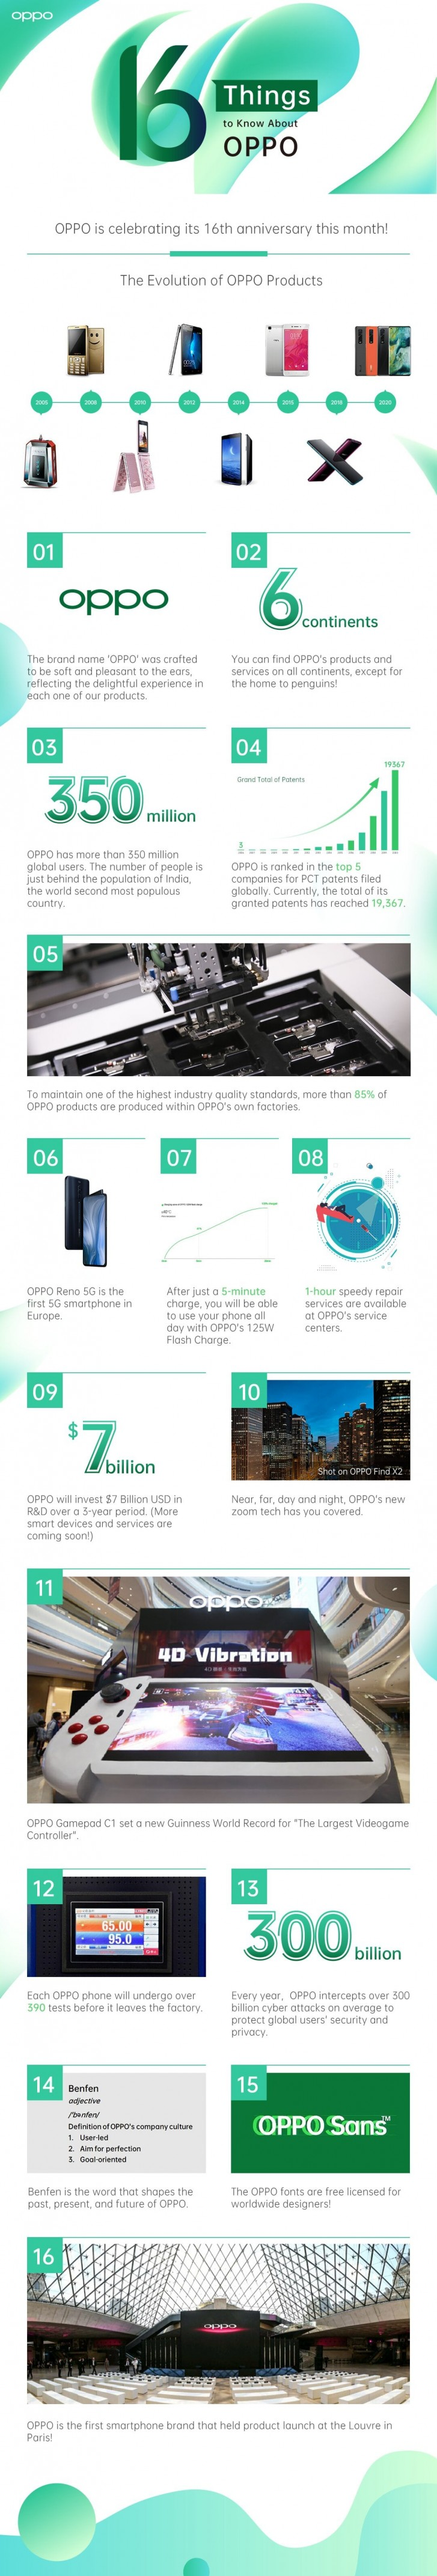 Oppo turns 16, reflects on the road it took and growing global footprint